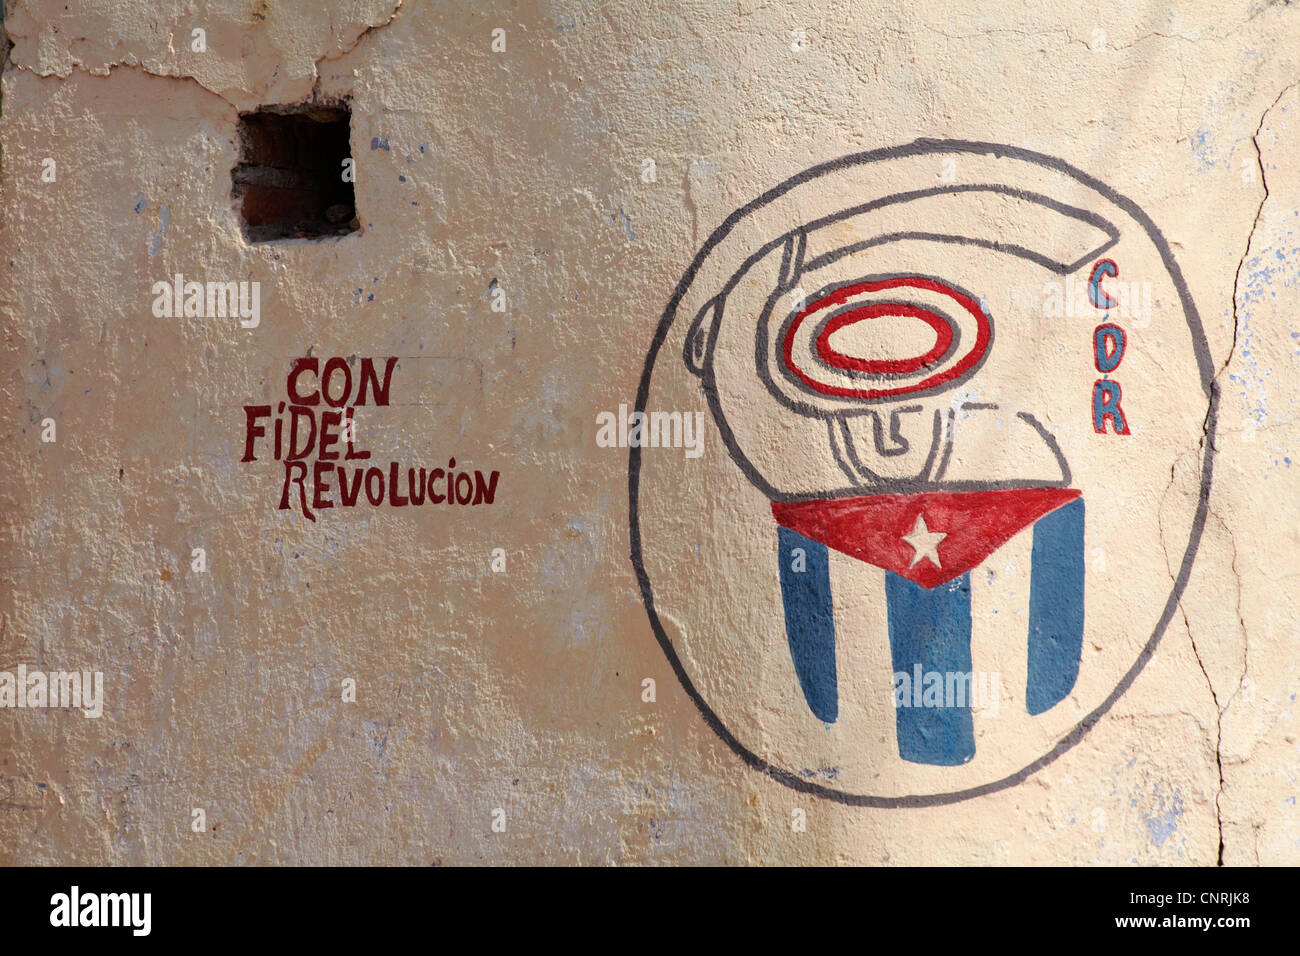 writing and painting on wall CDR con Fidel Revolucion at Trinidad, Cuba, West Indies, Caribbean, Central America - Stock Image